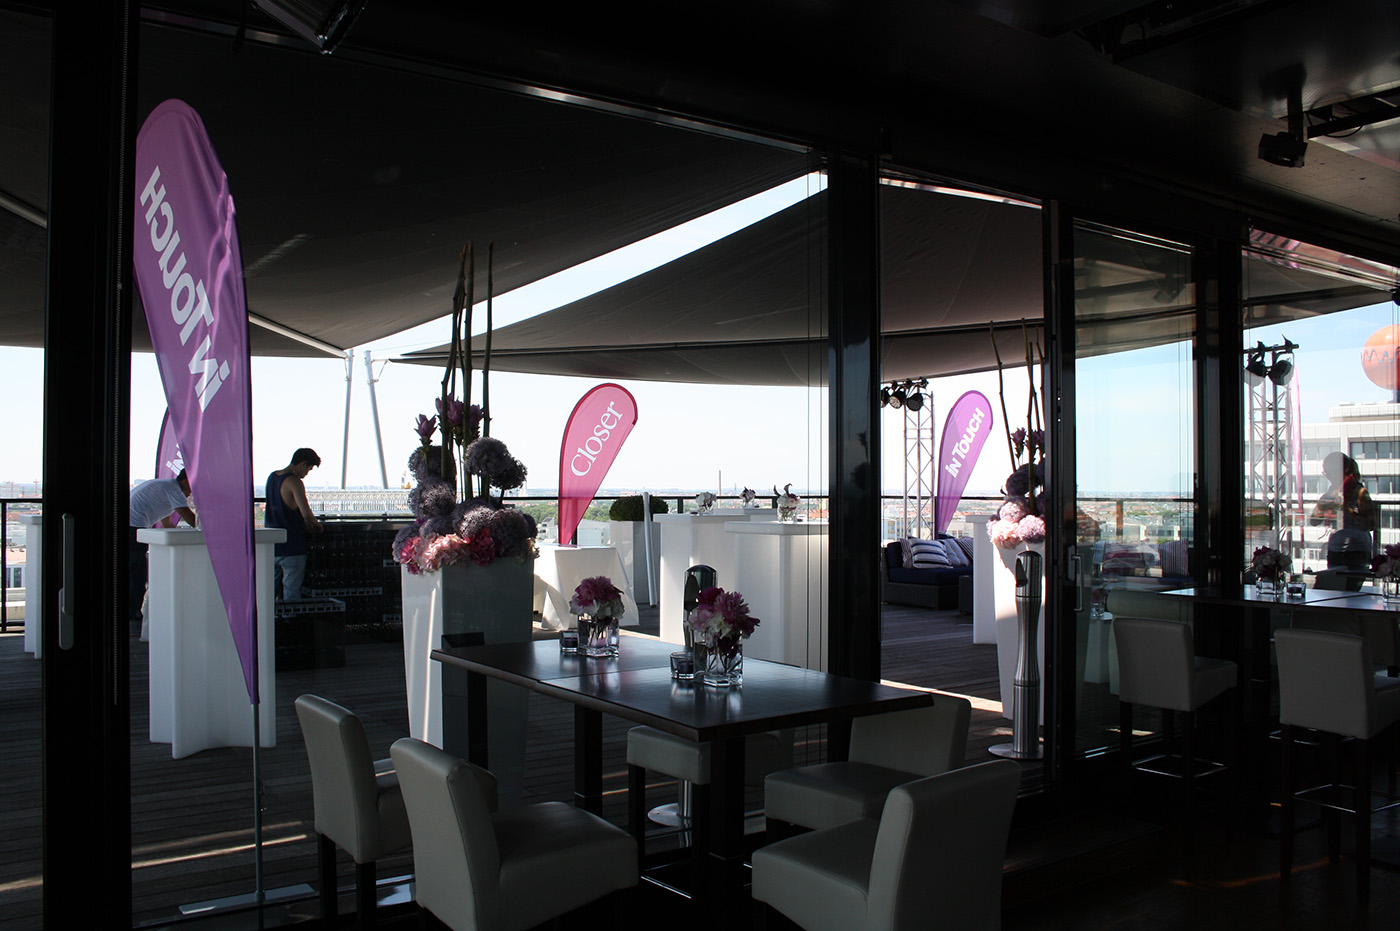 Level 10, Terrasse - Beachflags